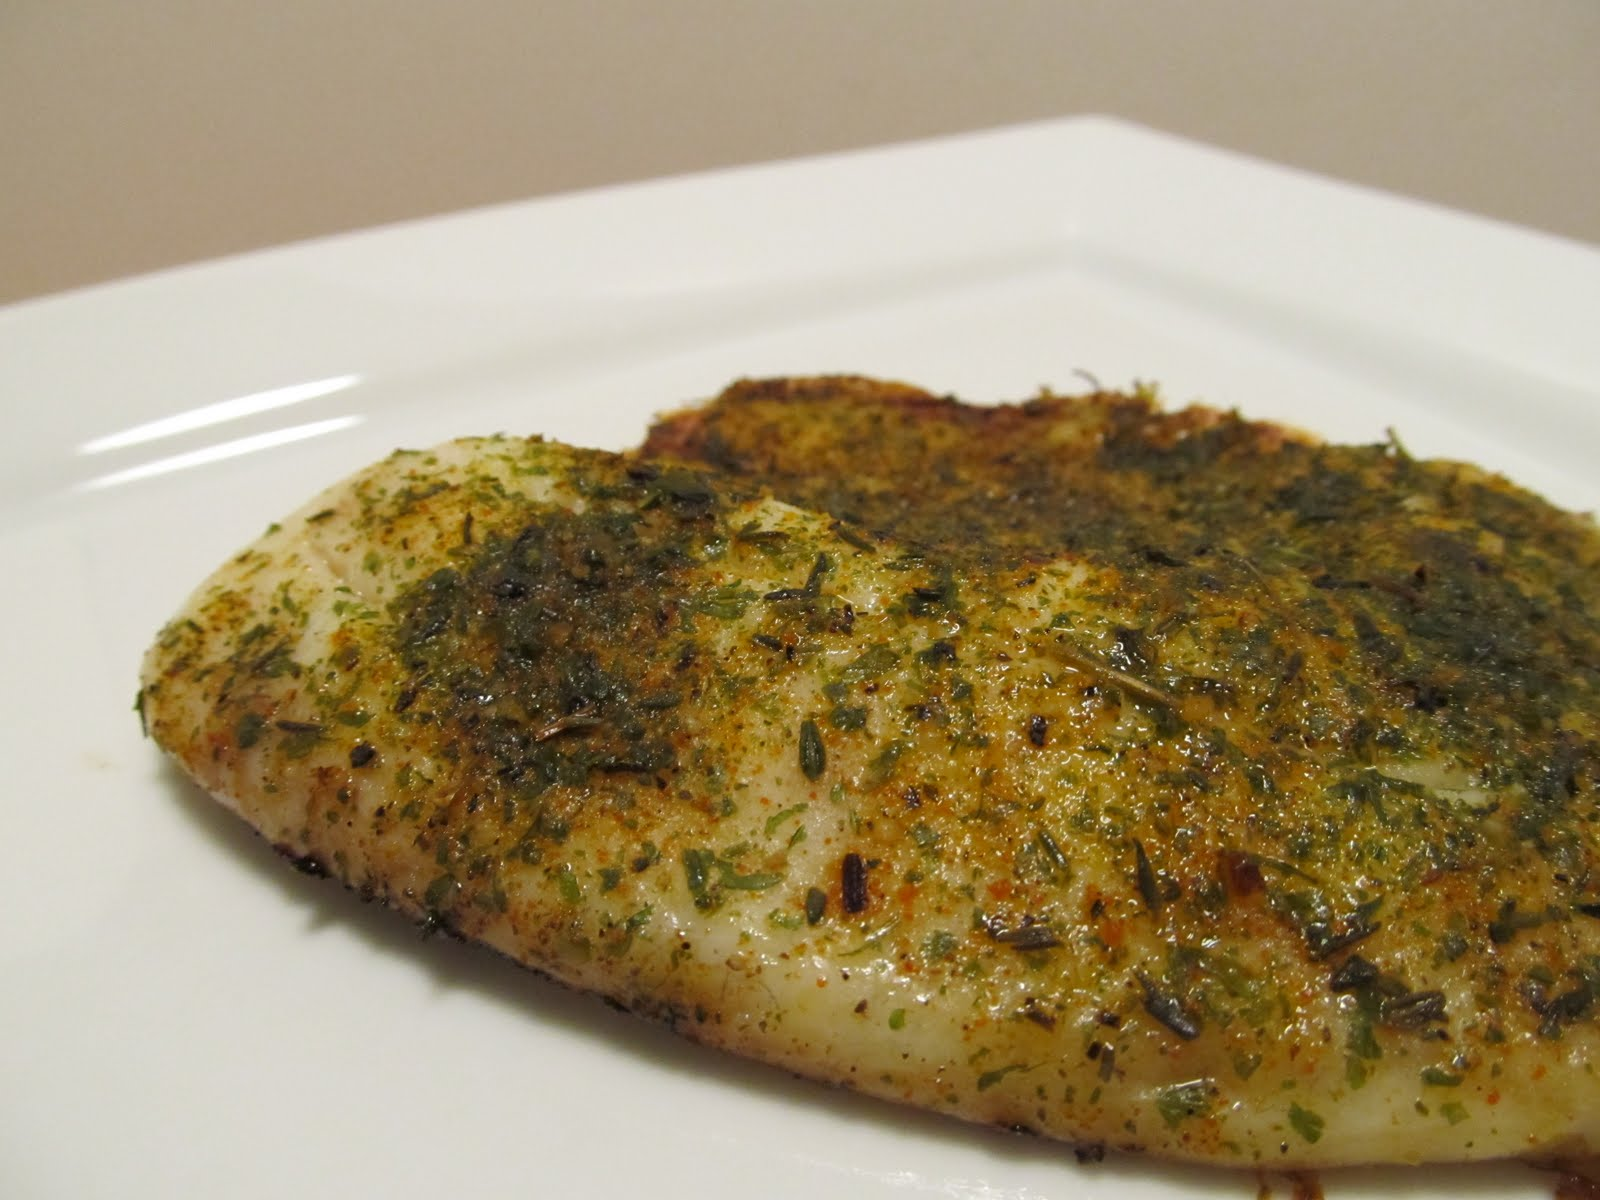 Blackened Tilapia with Homemade Spice Rub - Healthy & Only ...